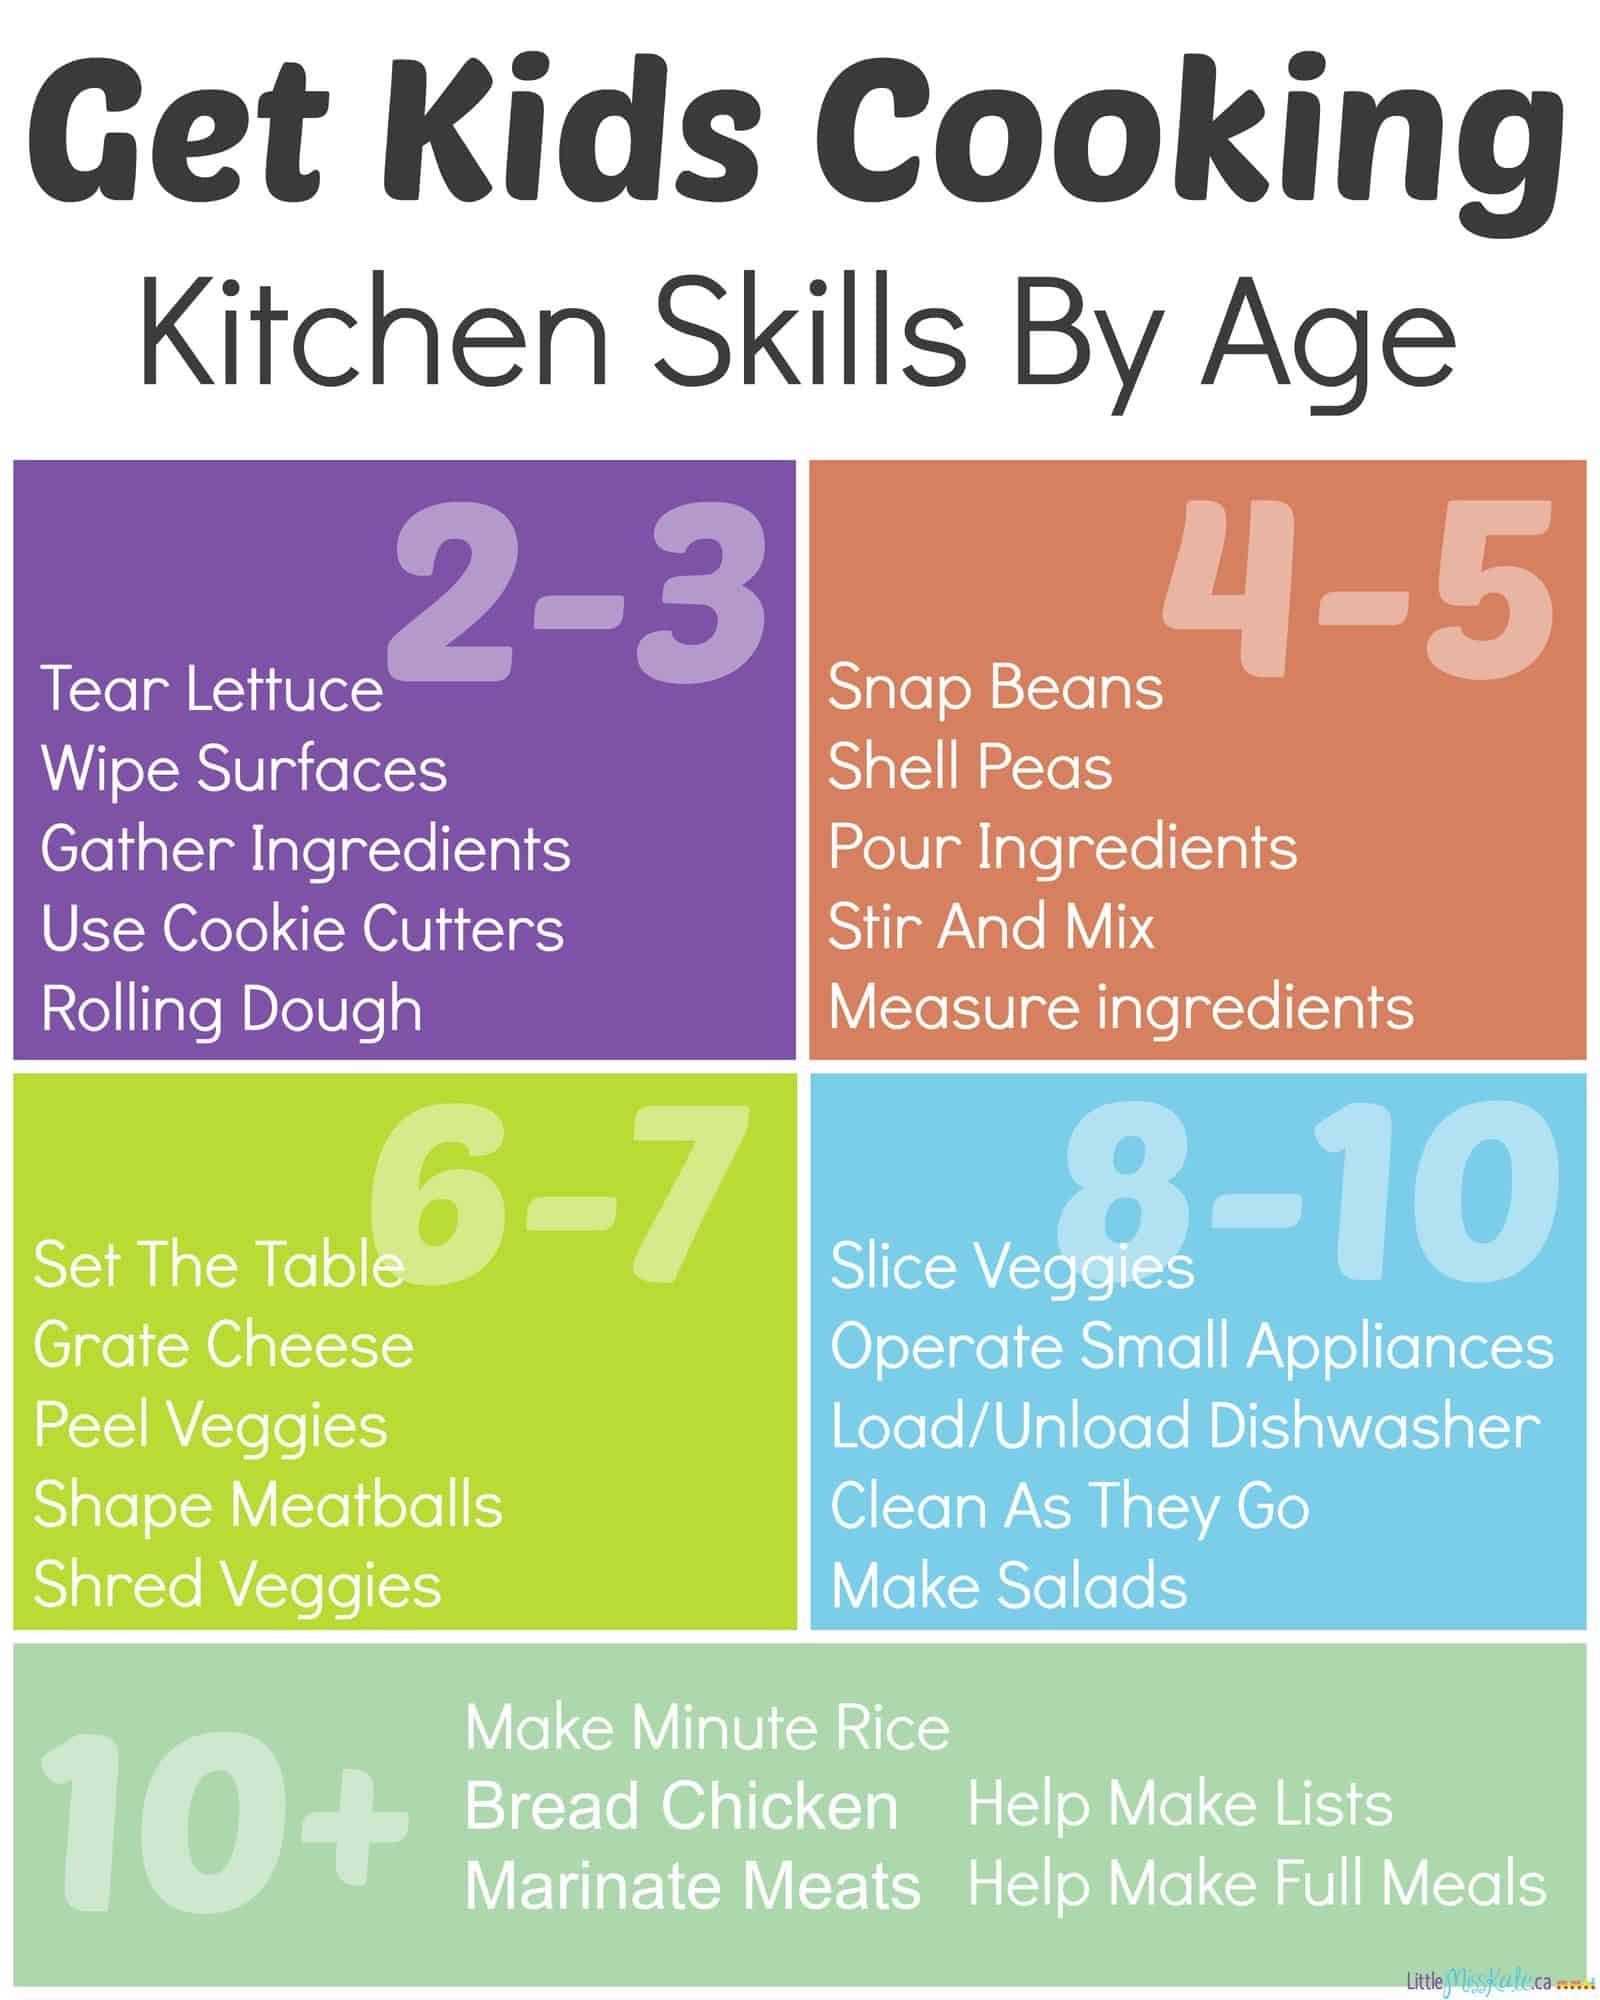 get kids involved in the kitchen skills by age table